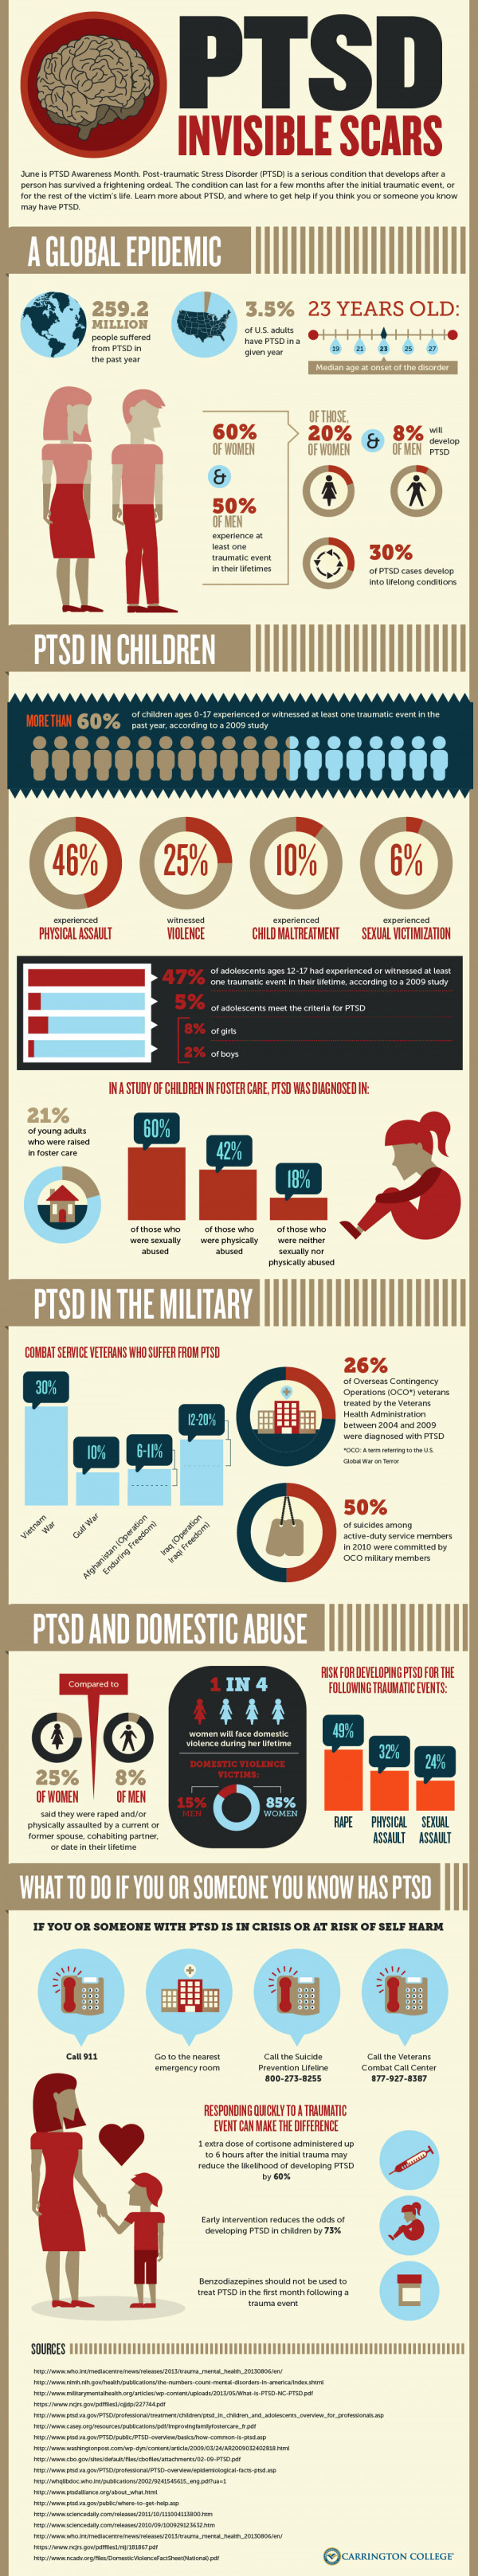 Post Traumatic Stress Disorder (PTSD) � The Invisible Scars